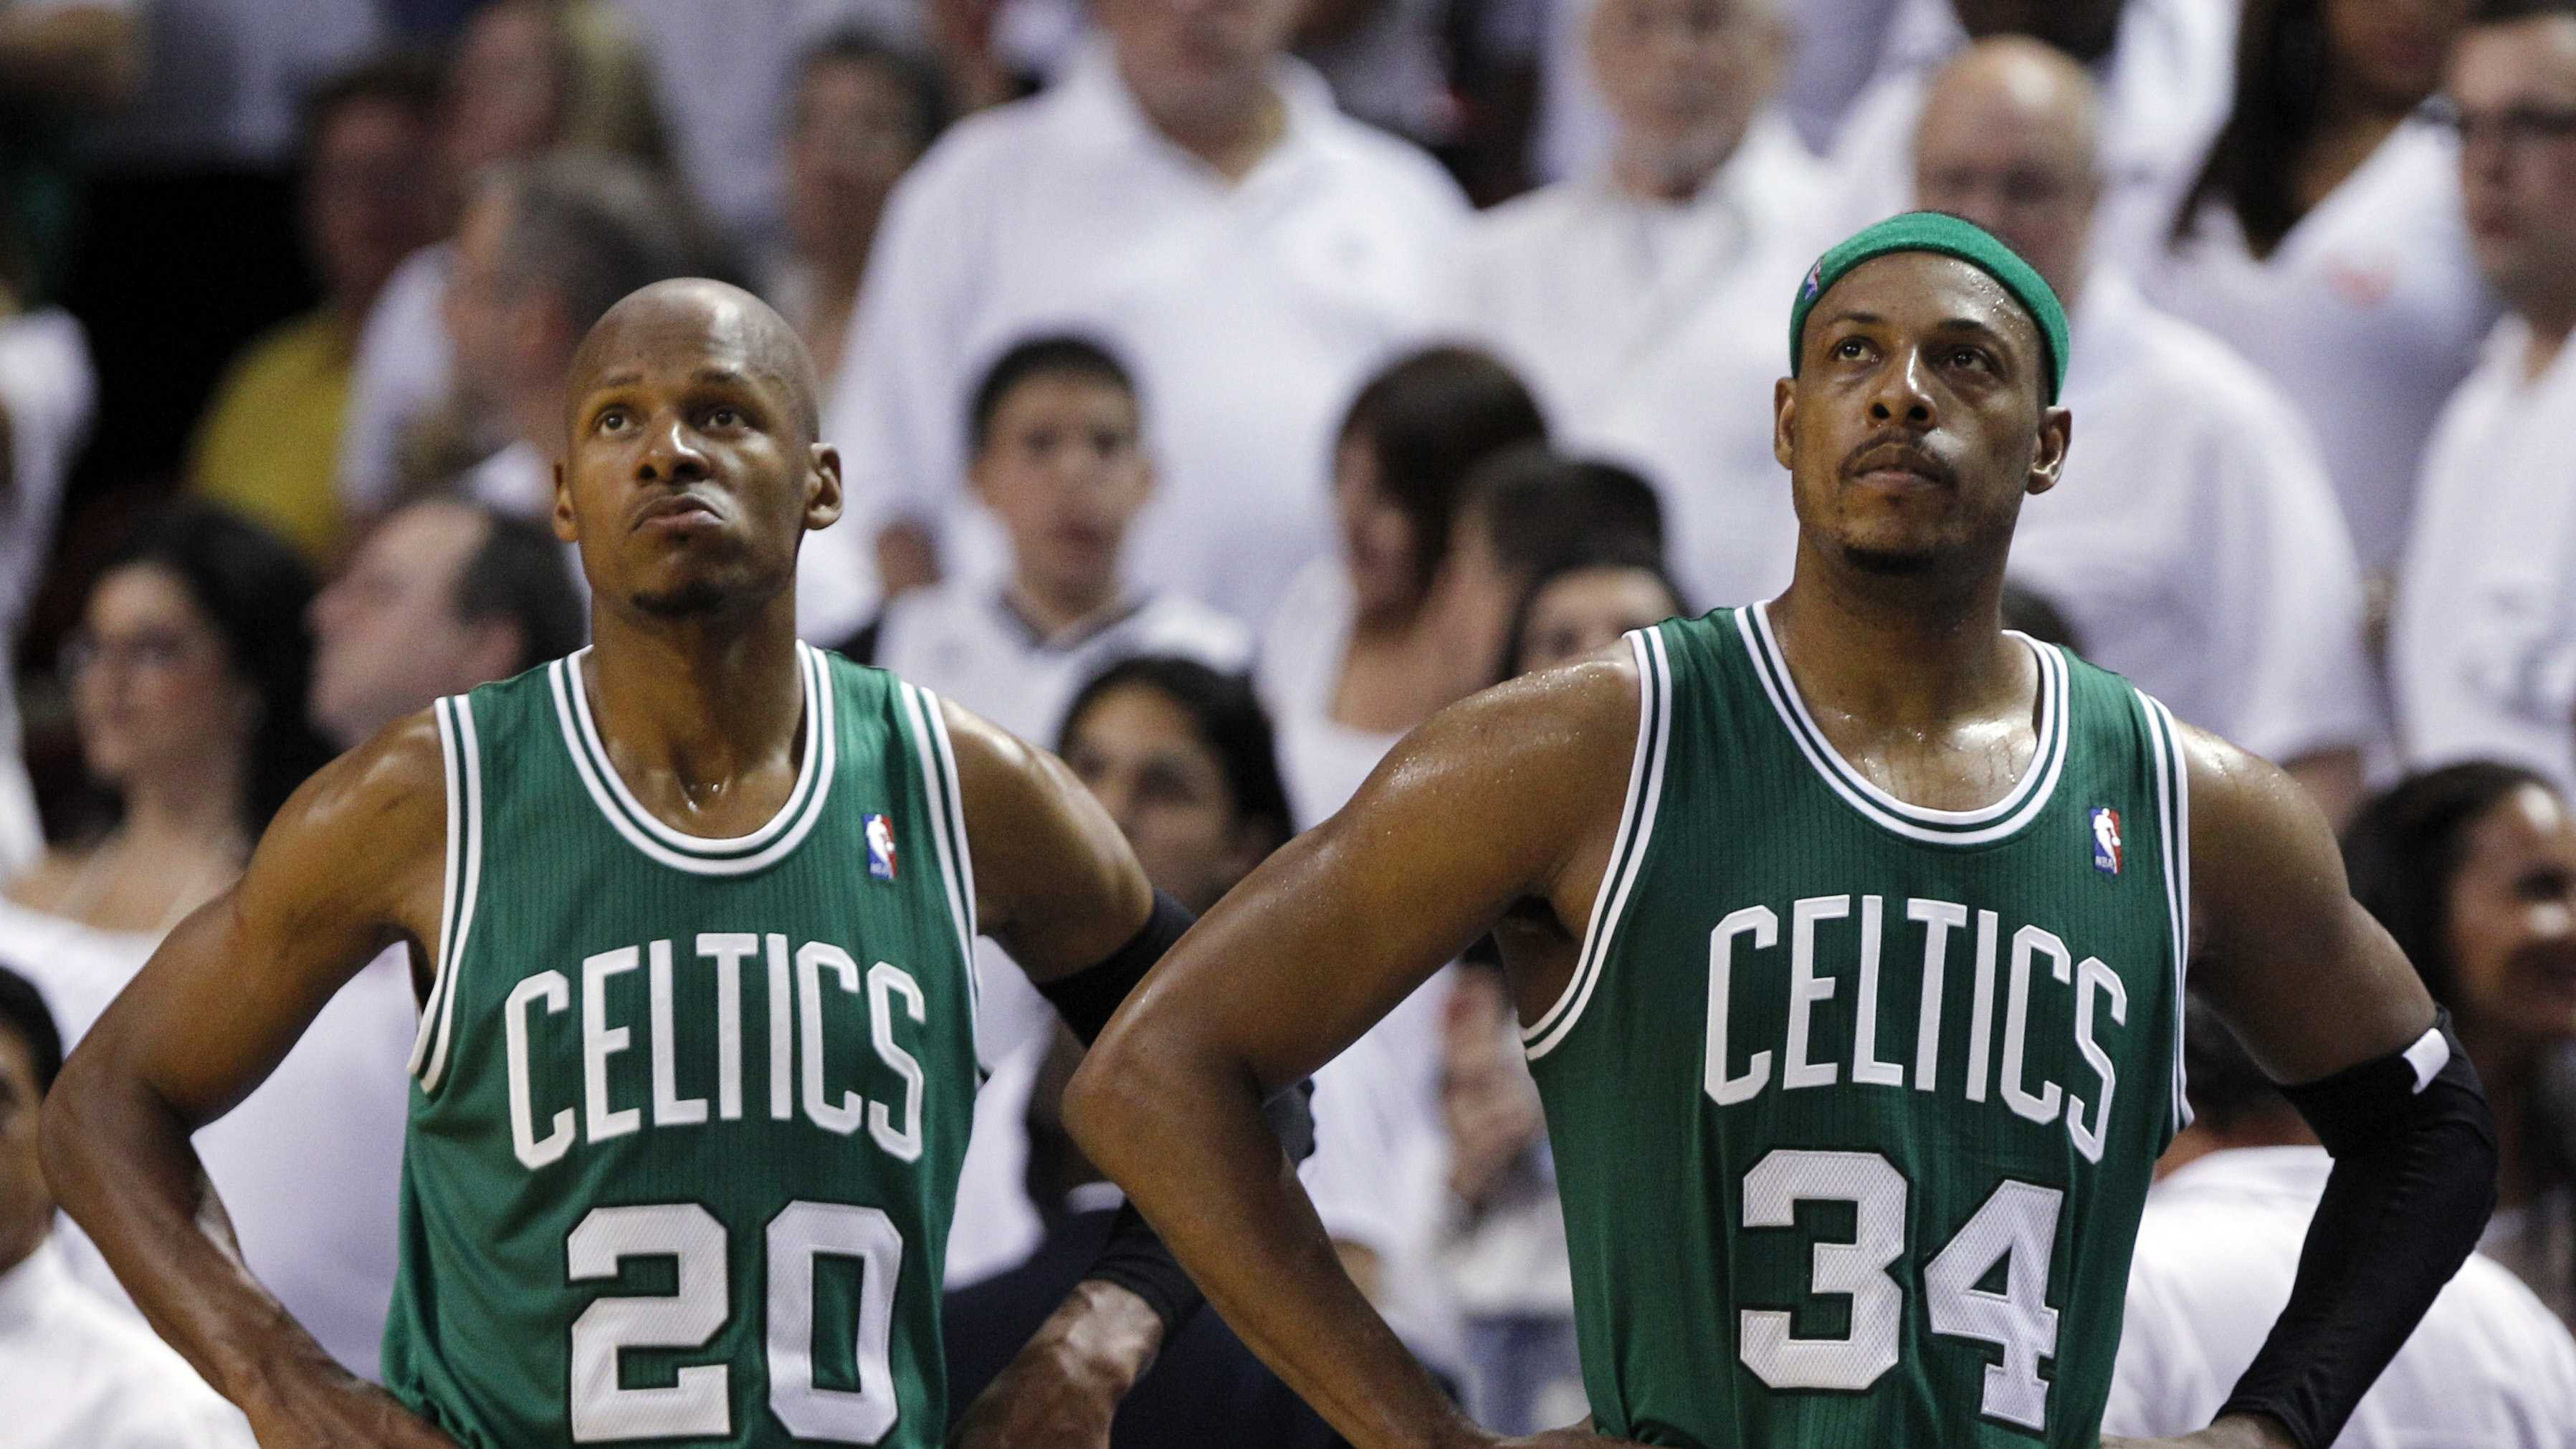 Ray Allen and Paul Pierce look up at the scoreboard as the Celtics fall behind the Miami Heat.